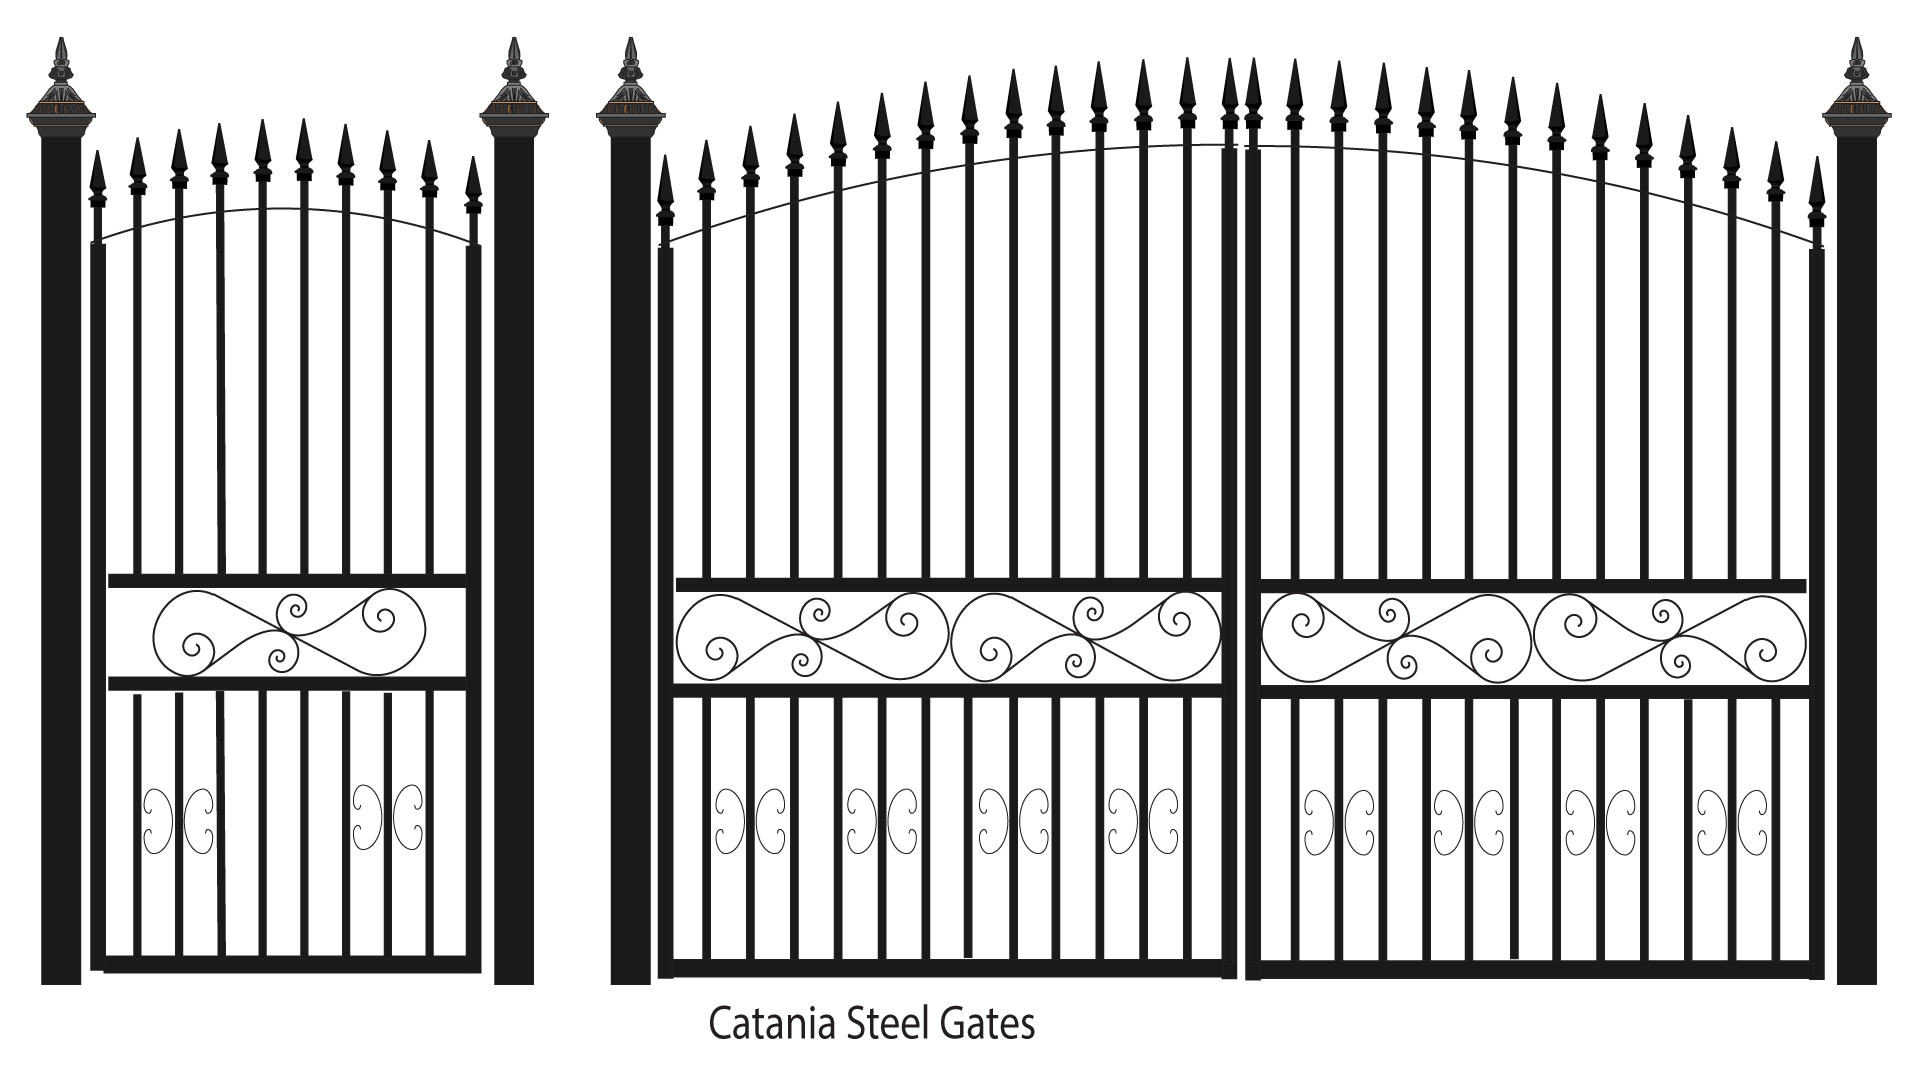 Catania Steel Gates For Web Png 1920 1080 Wrought Iron Gates Iron Gates Steel Gate